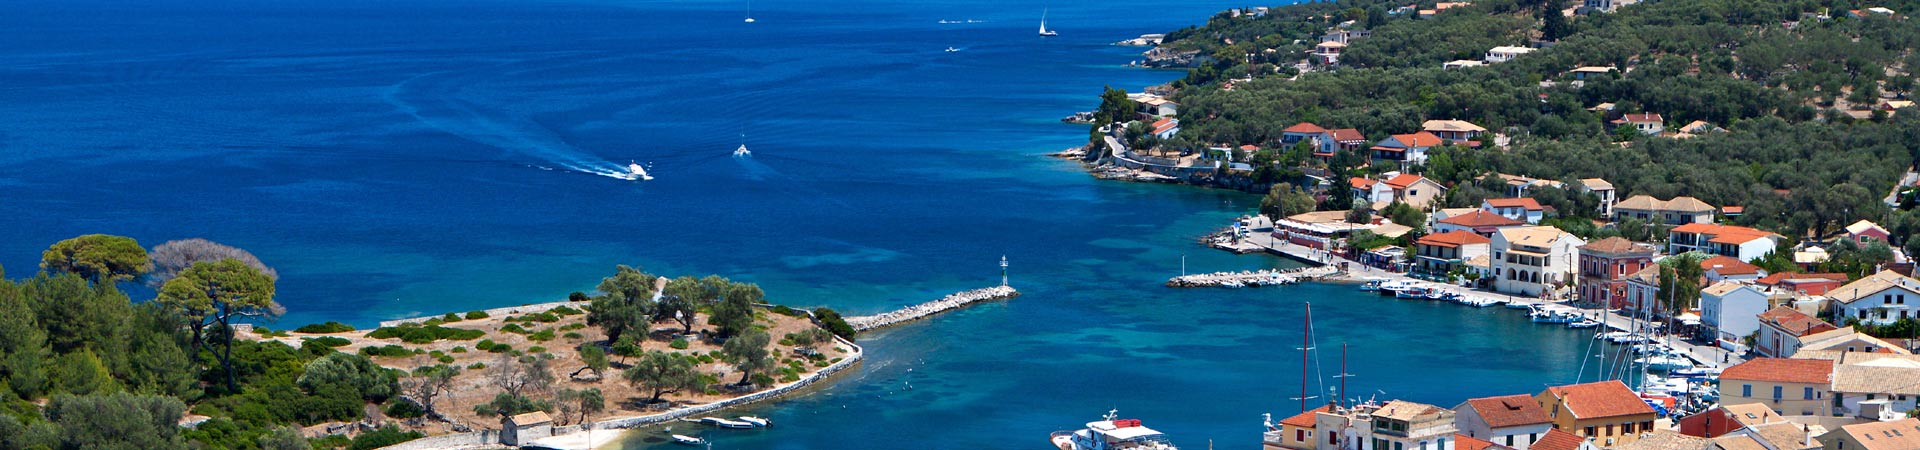 Paxi (Paxos) Island, Greece